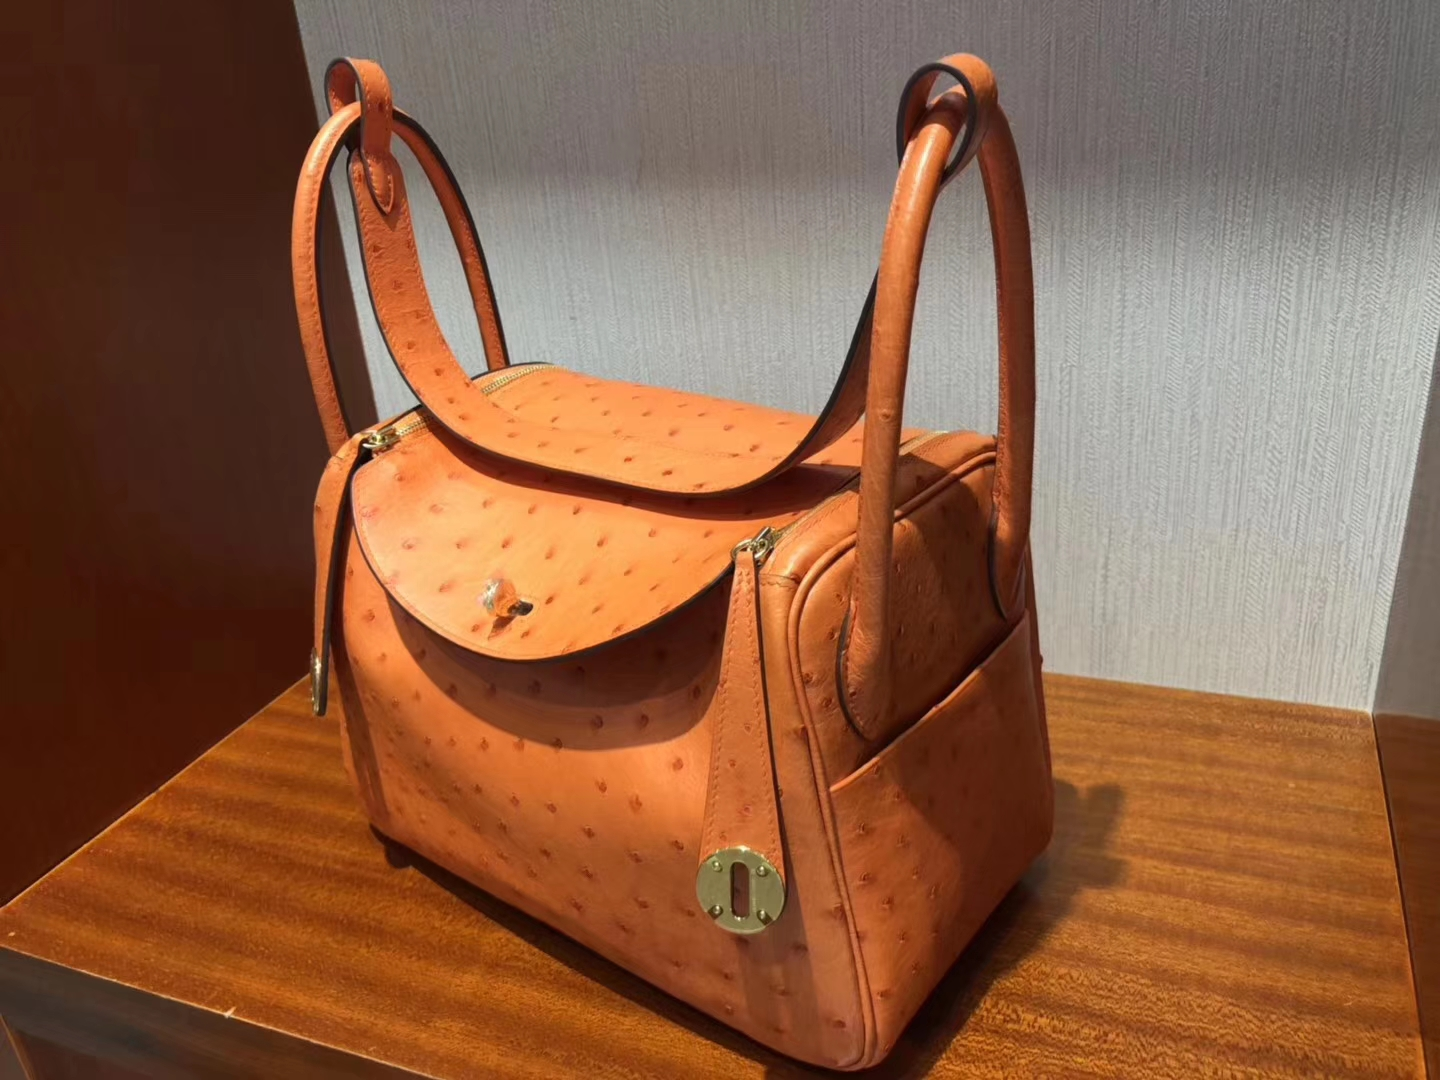 愛馬仕lindy價格 Hermes Lindy bag 26cm CK93 Orange橙色 KK南非鴕鳥皮